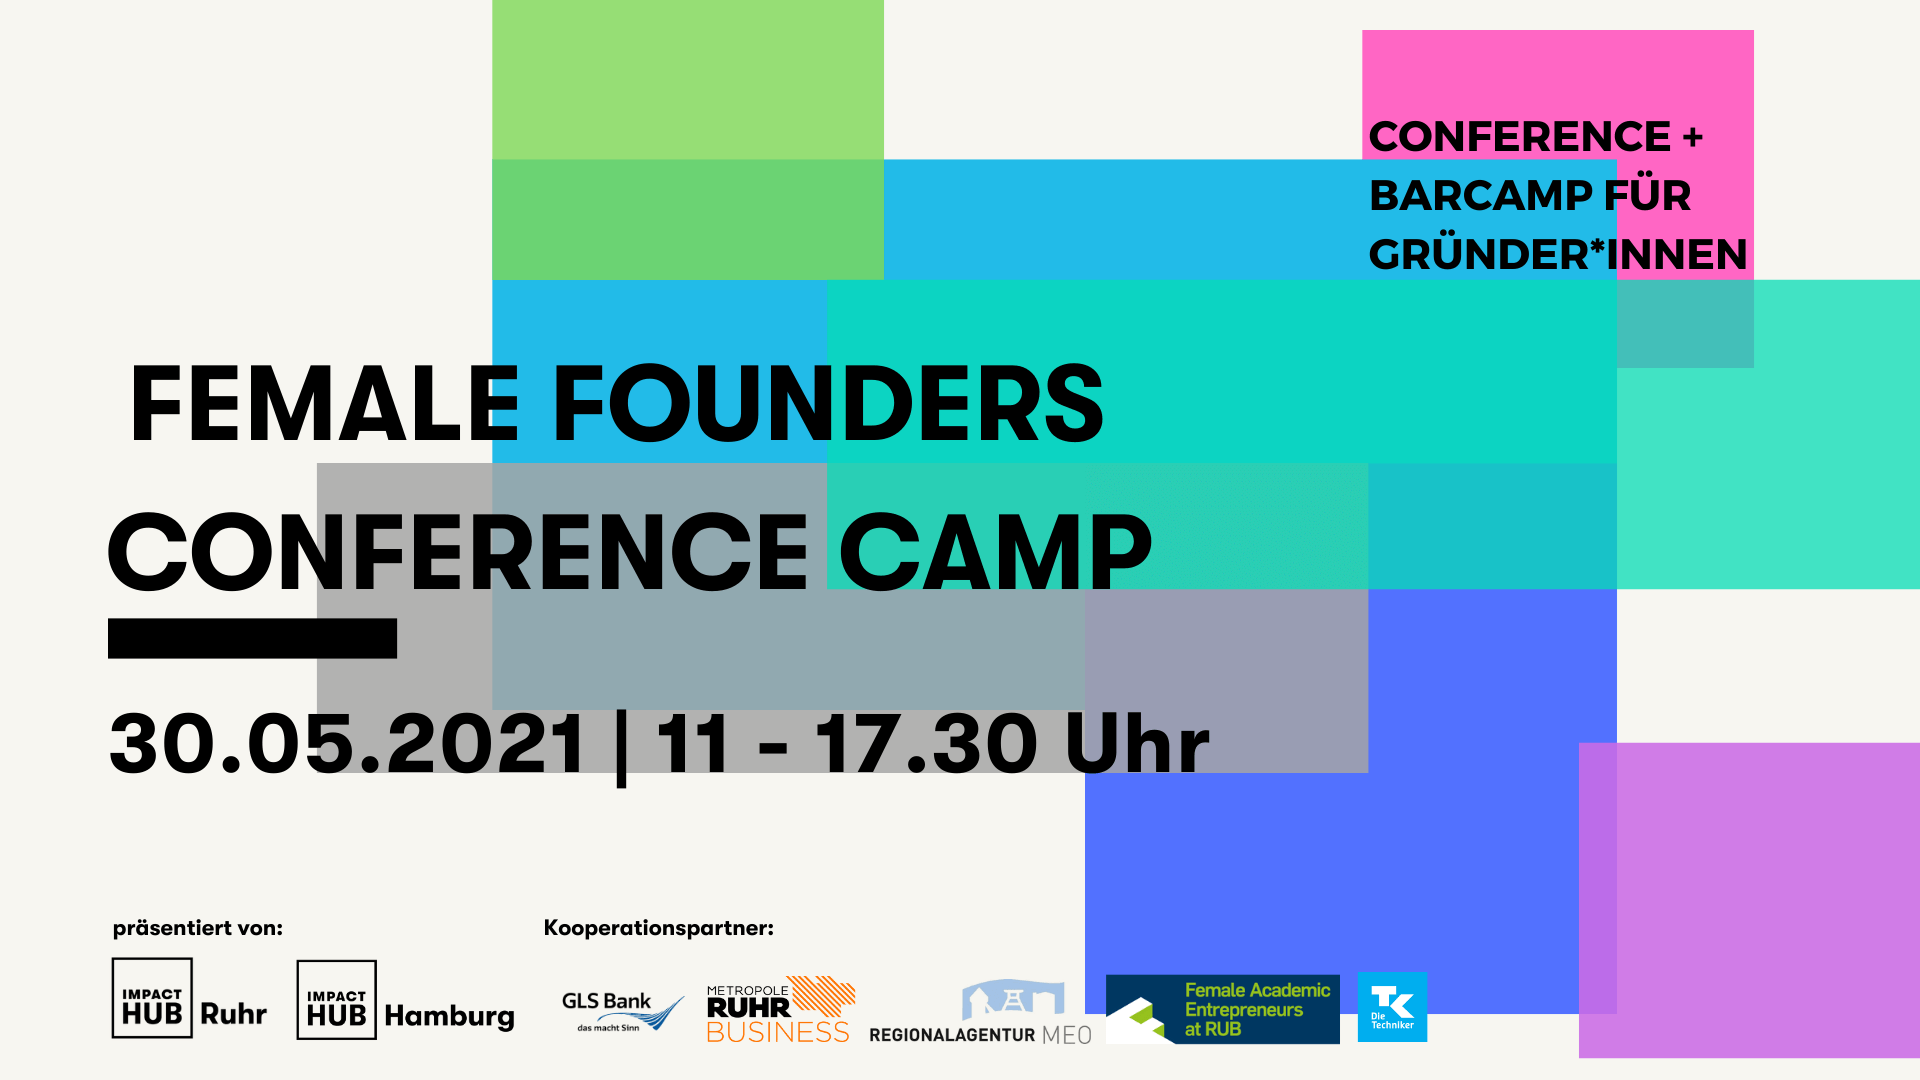 Female Founders Conference Camp